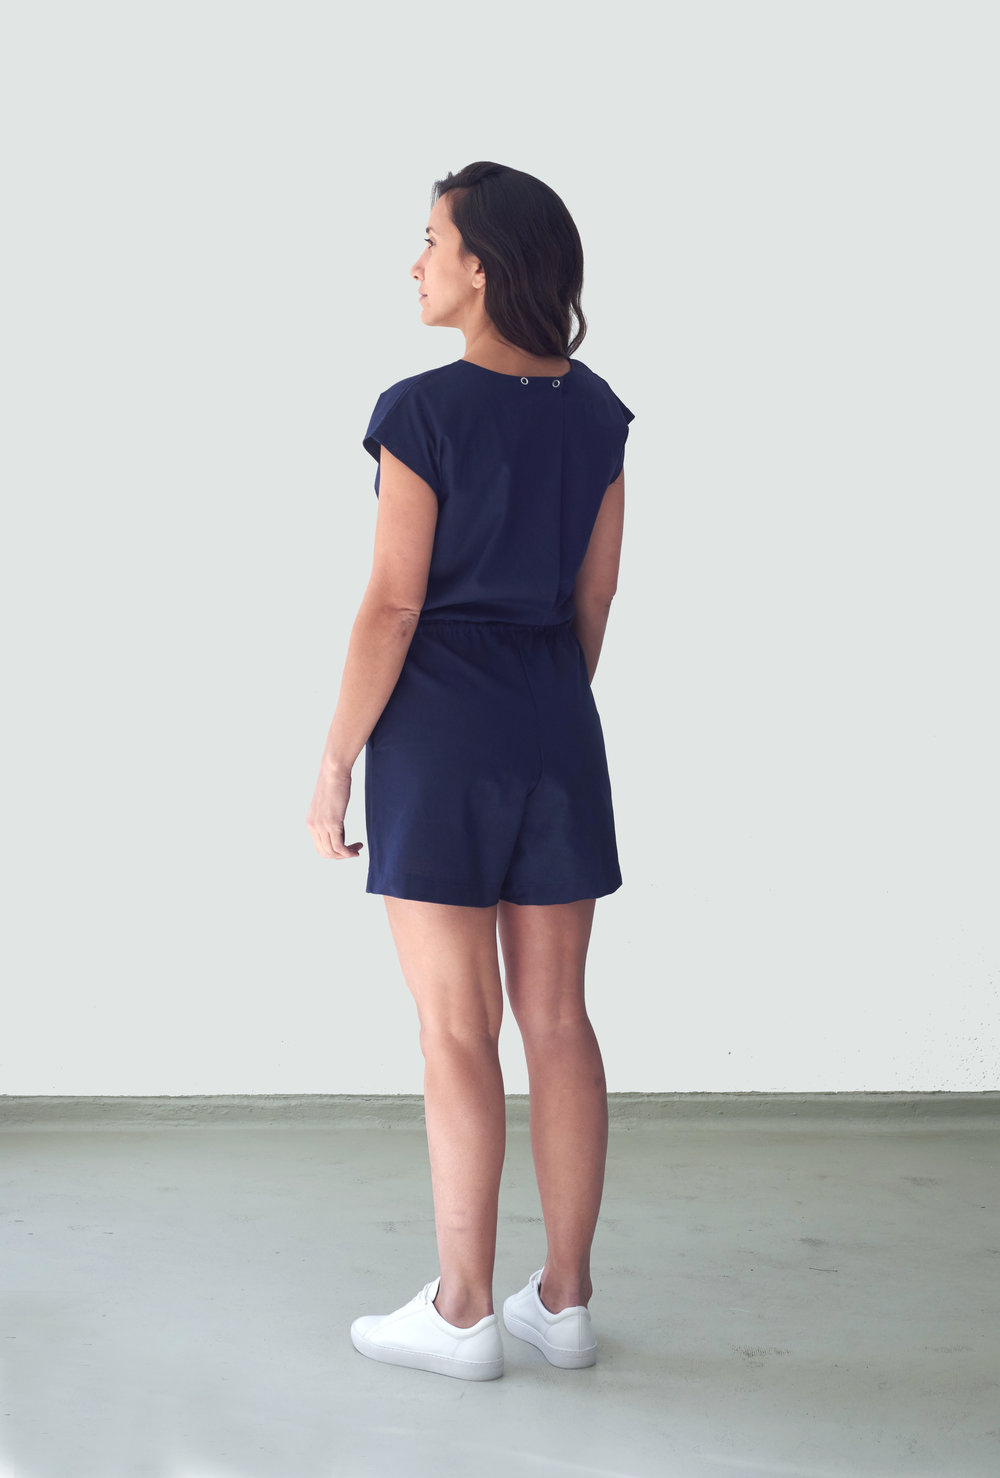 navy playsuit2.jpg